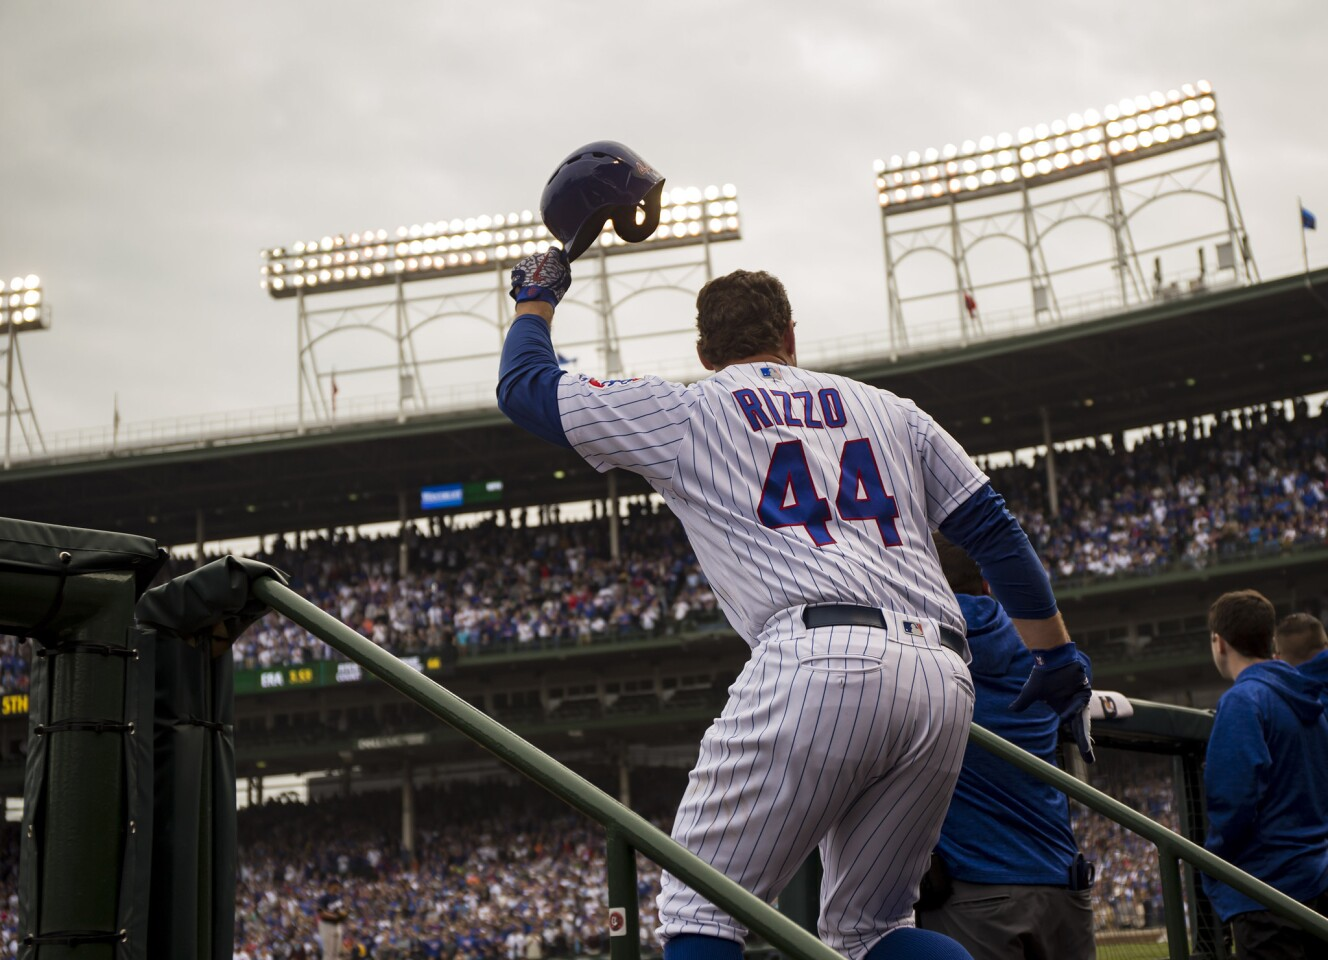 Chicago Cubs first baseman Anthony Rizzo (44) takes a curtain call after his home run in the fifth inning against the Milwaukee Brewers on Monday, Oct. 1, 2018 at Wrigley Field in Chicago, Ill.